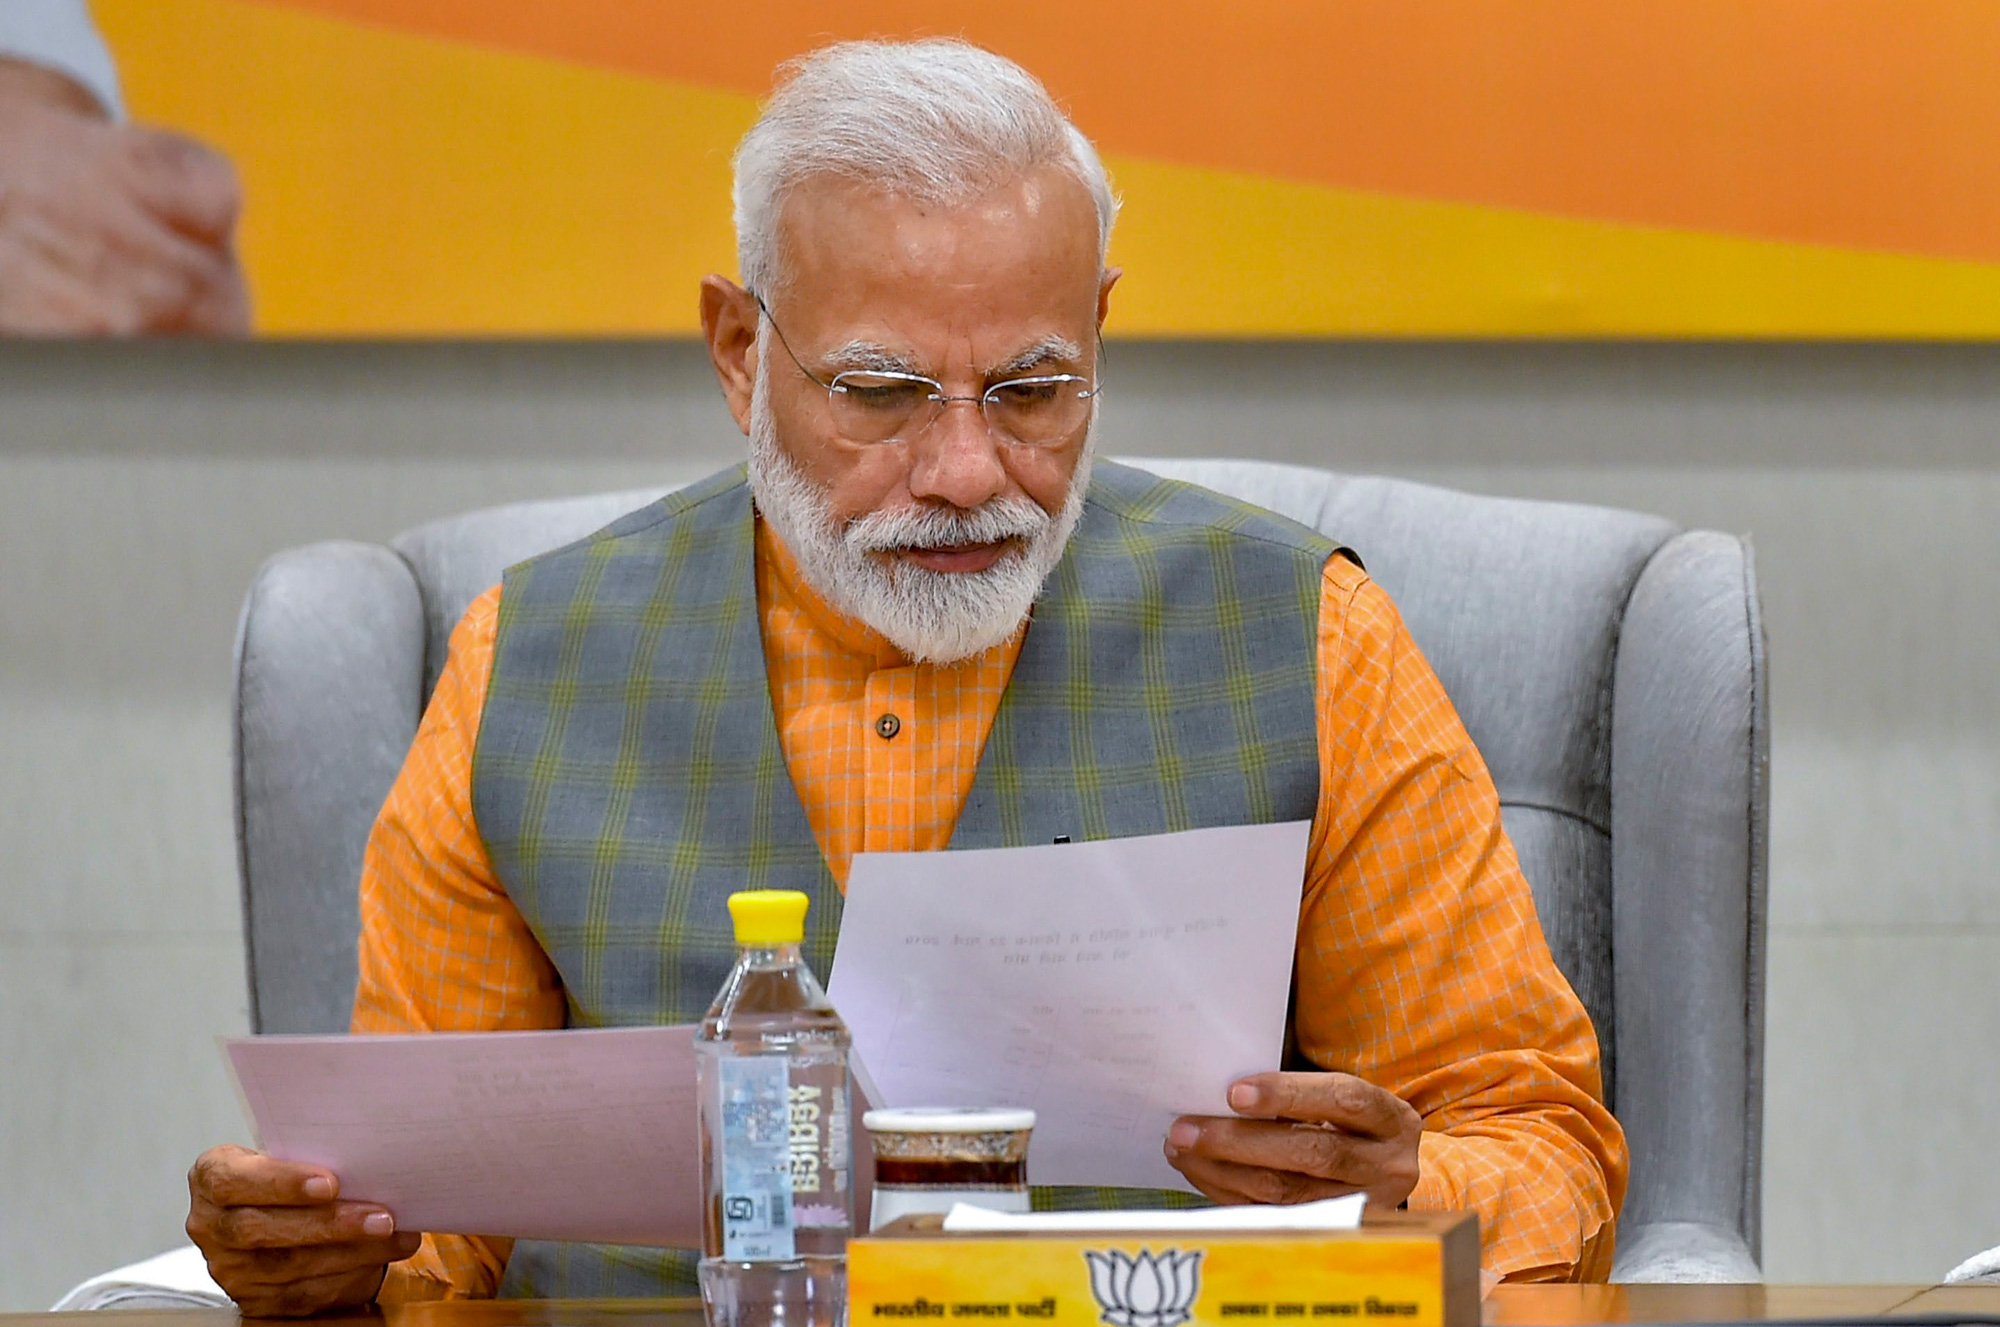 Prime Minister Narendra Modi during the BJP Central Election Committee (CEC) meeting for the upcoming Lok Sabha elections, at BJP headquarters in New Delhi on Friday, March 22, 2019.